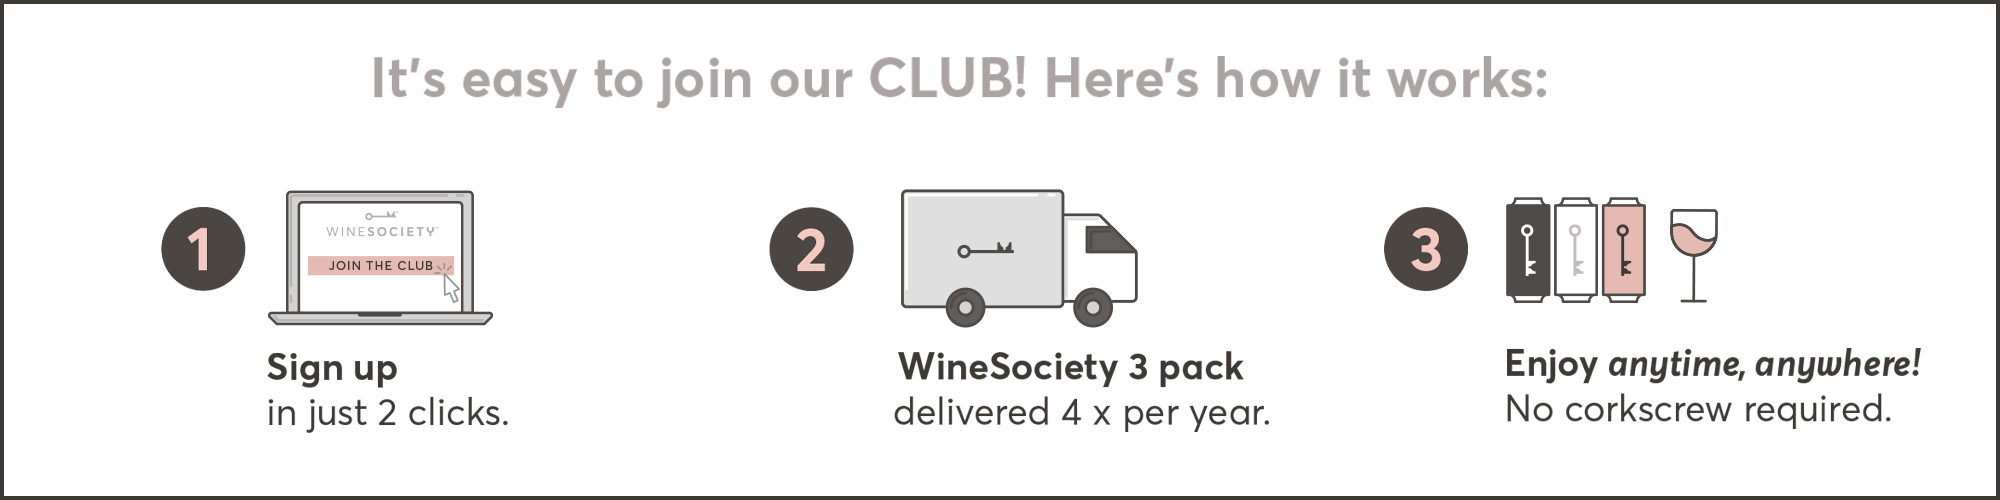 Join CLUB WineSociety